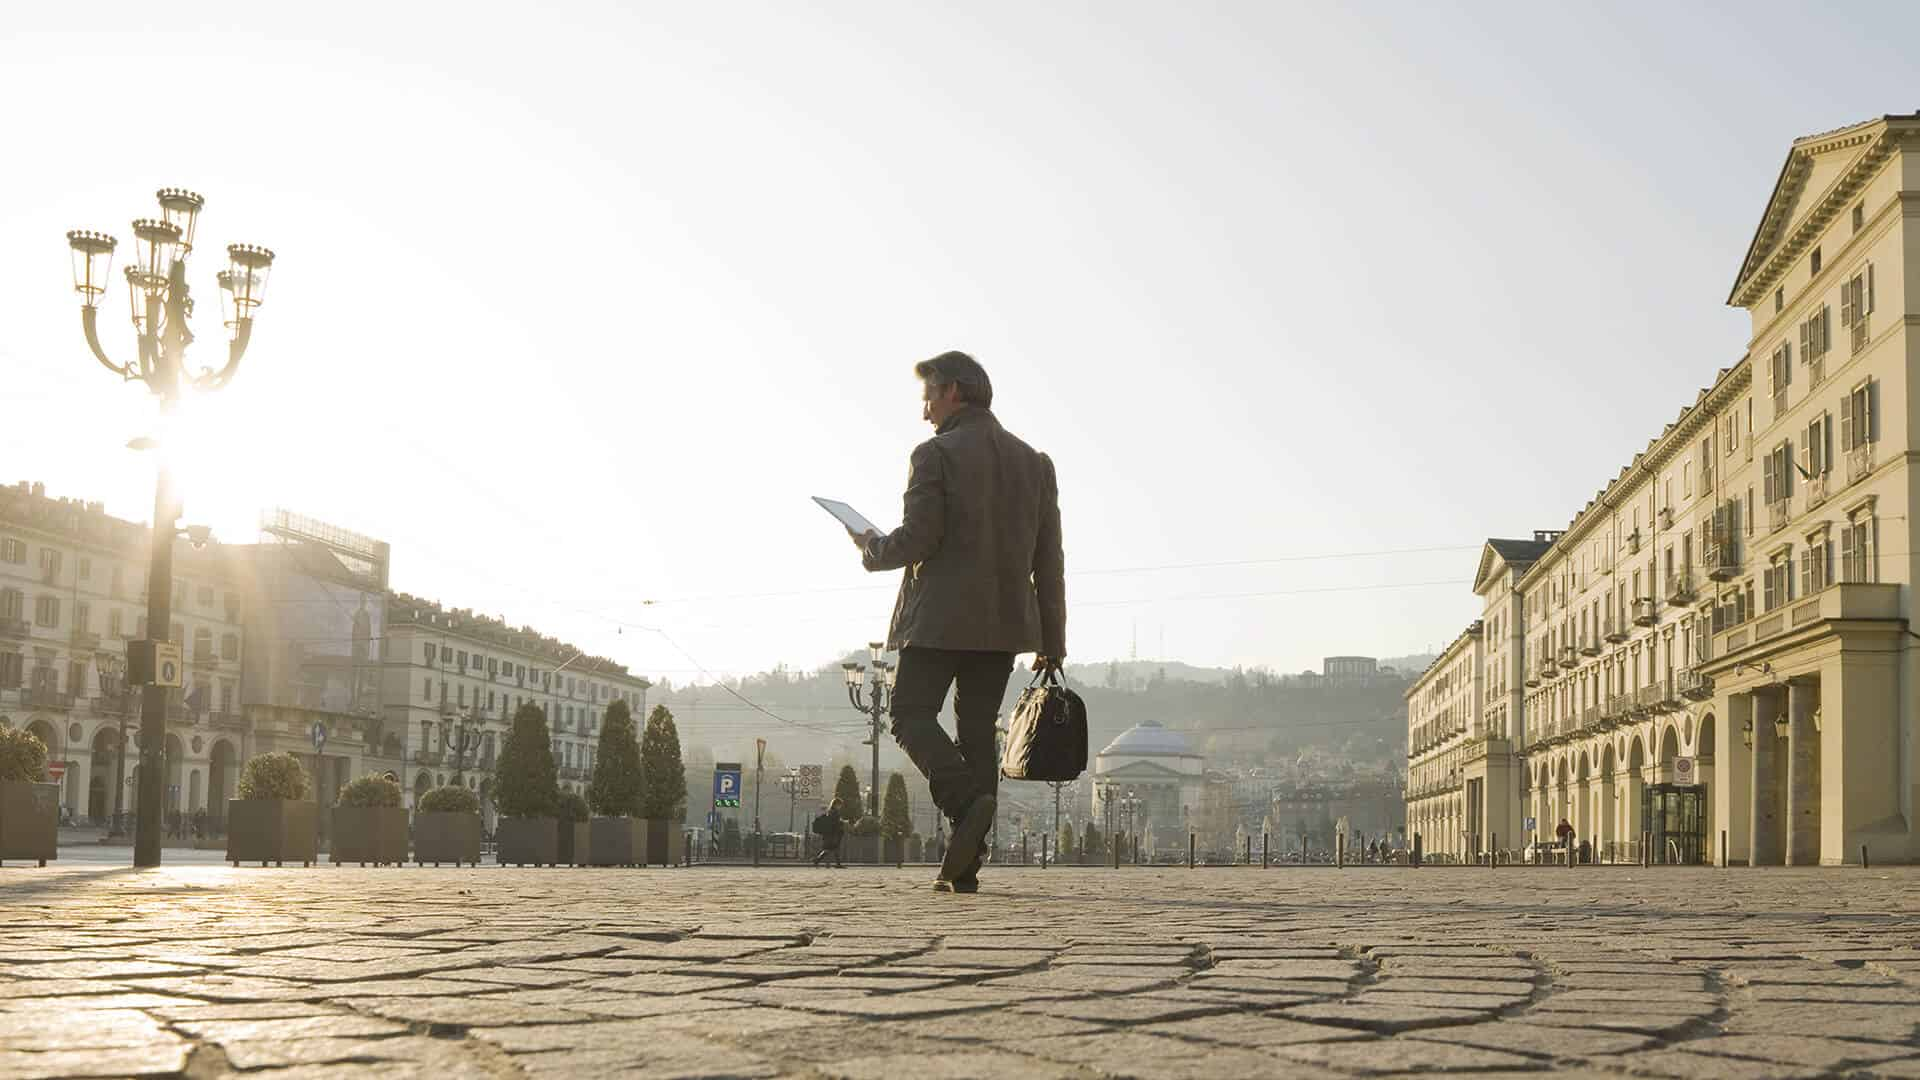 Mandatory B2B e-Invoicing – How Italy is Driving Change in Europe